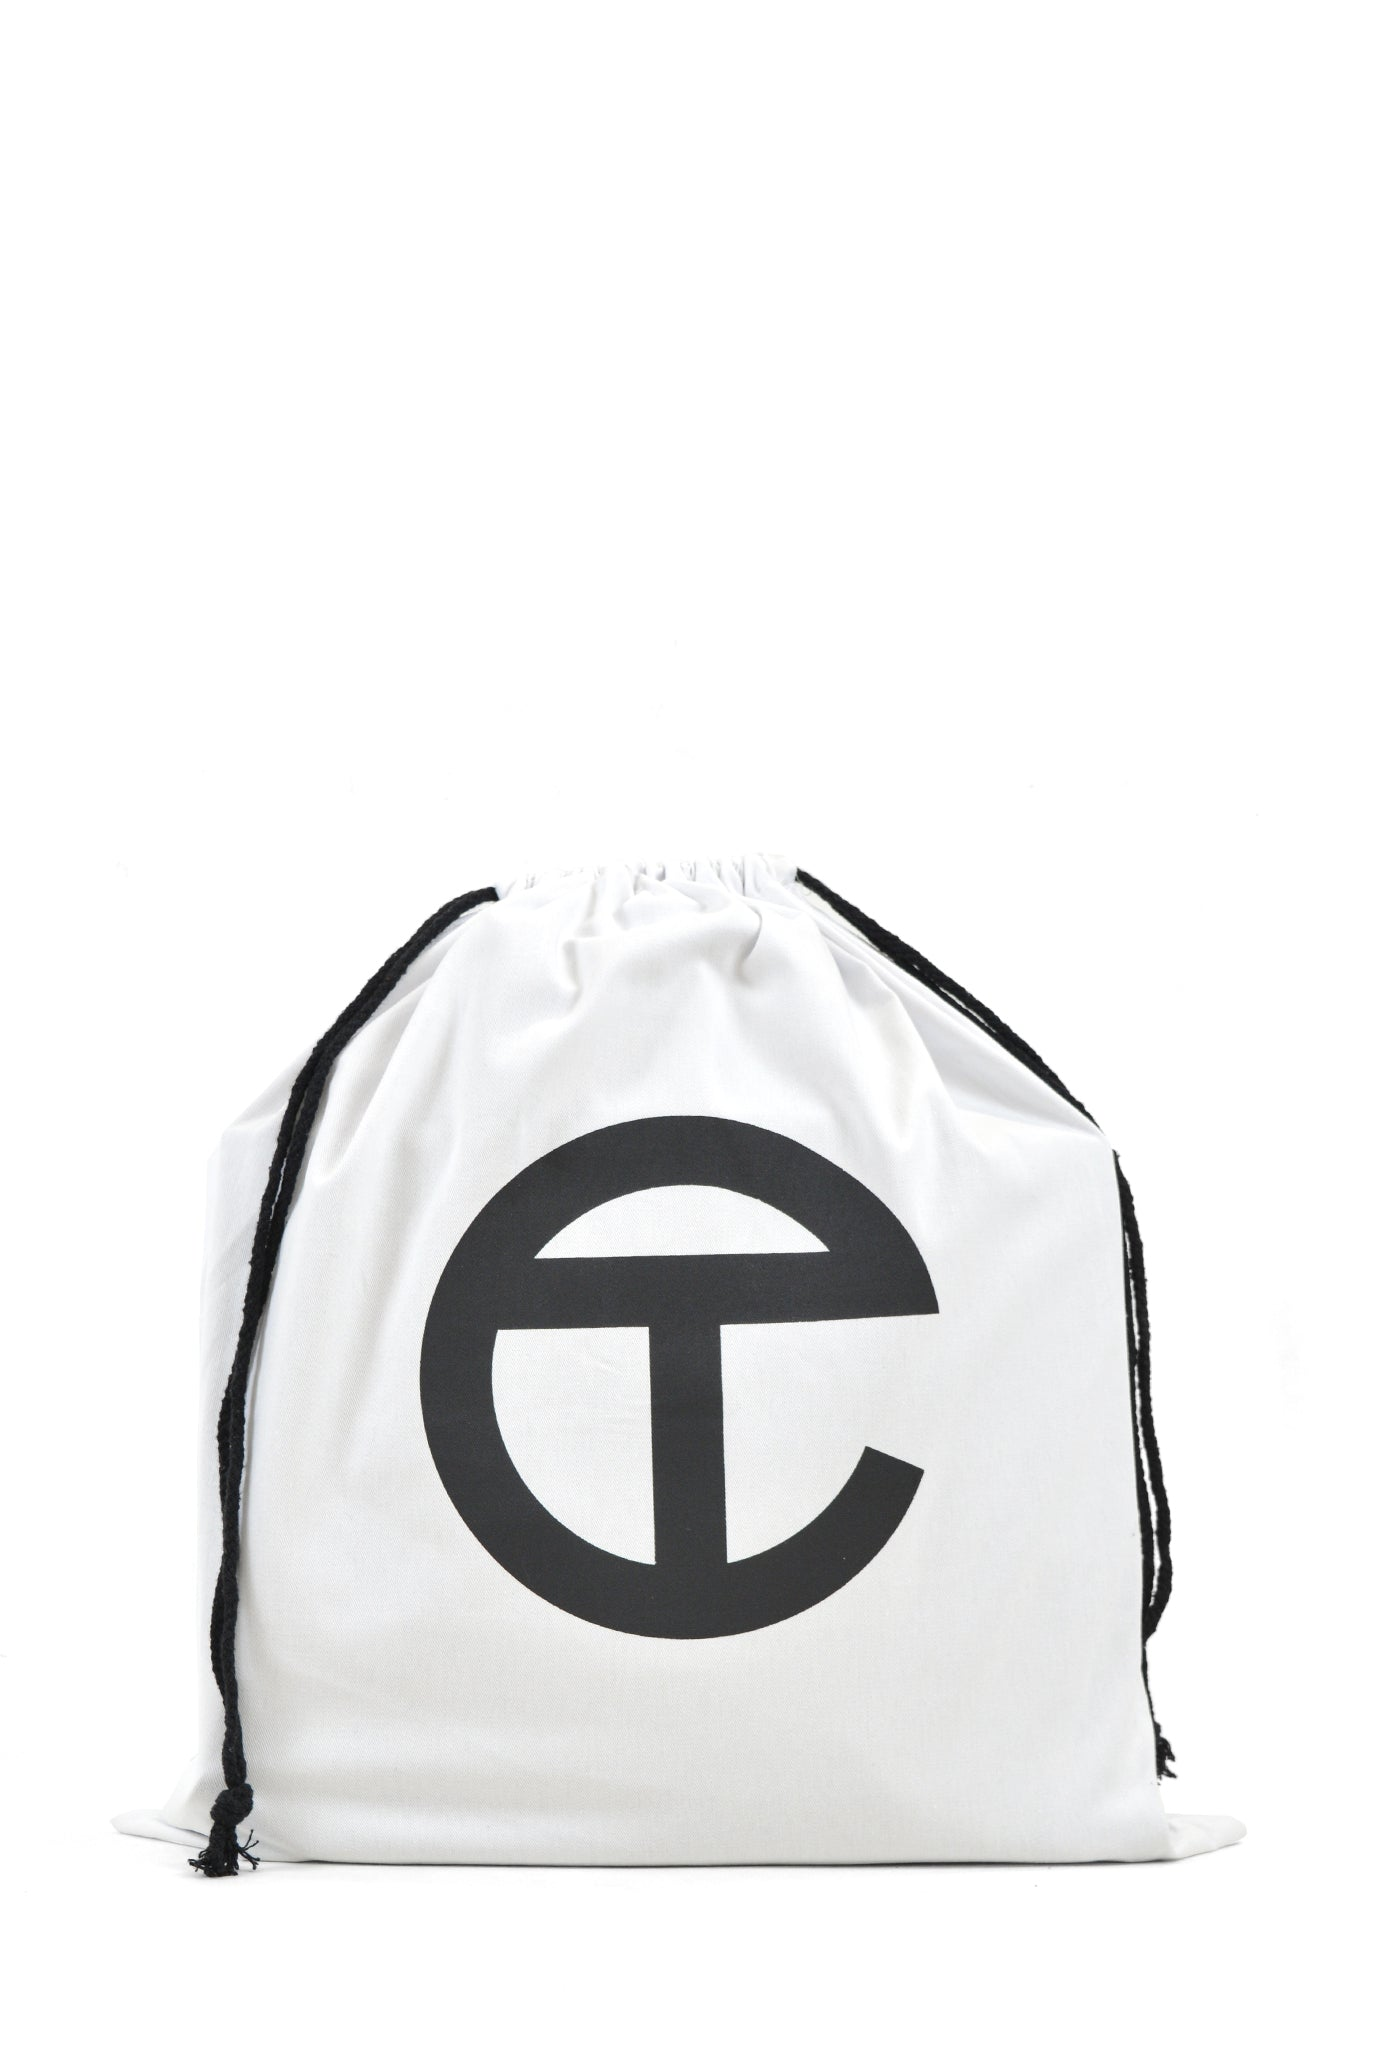 Telfar Medium Shopping Bag, Tote